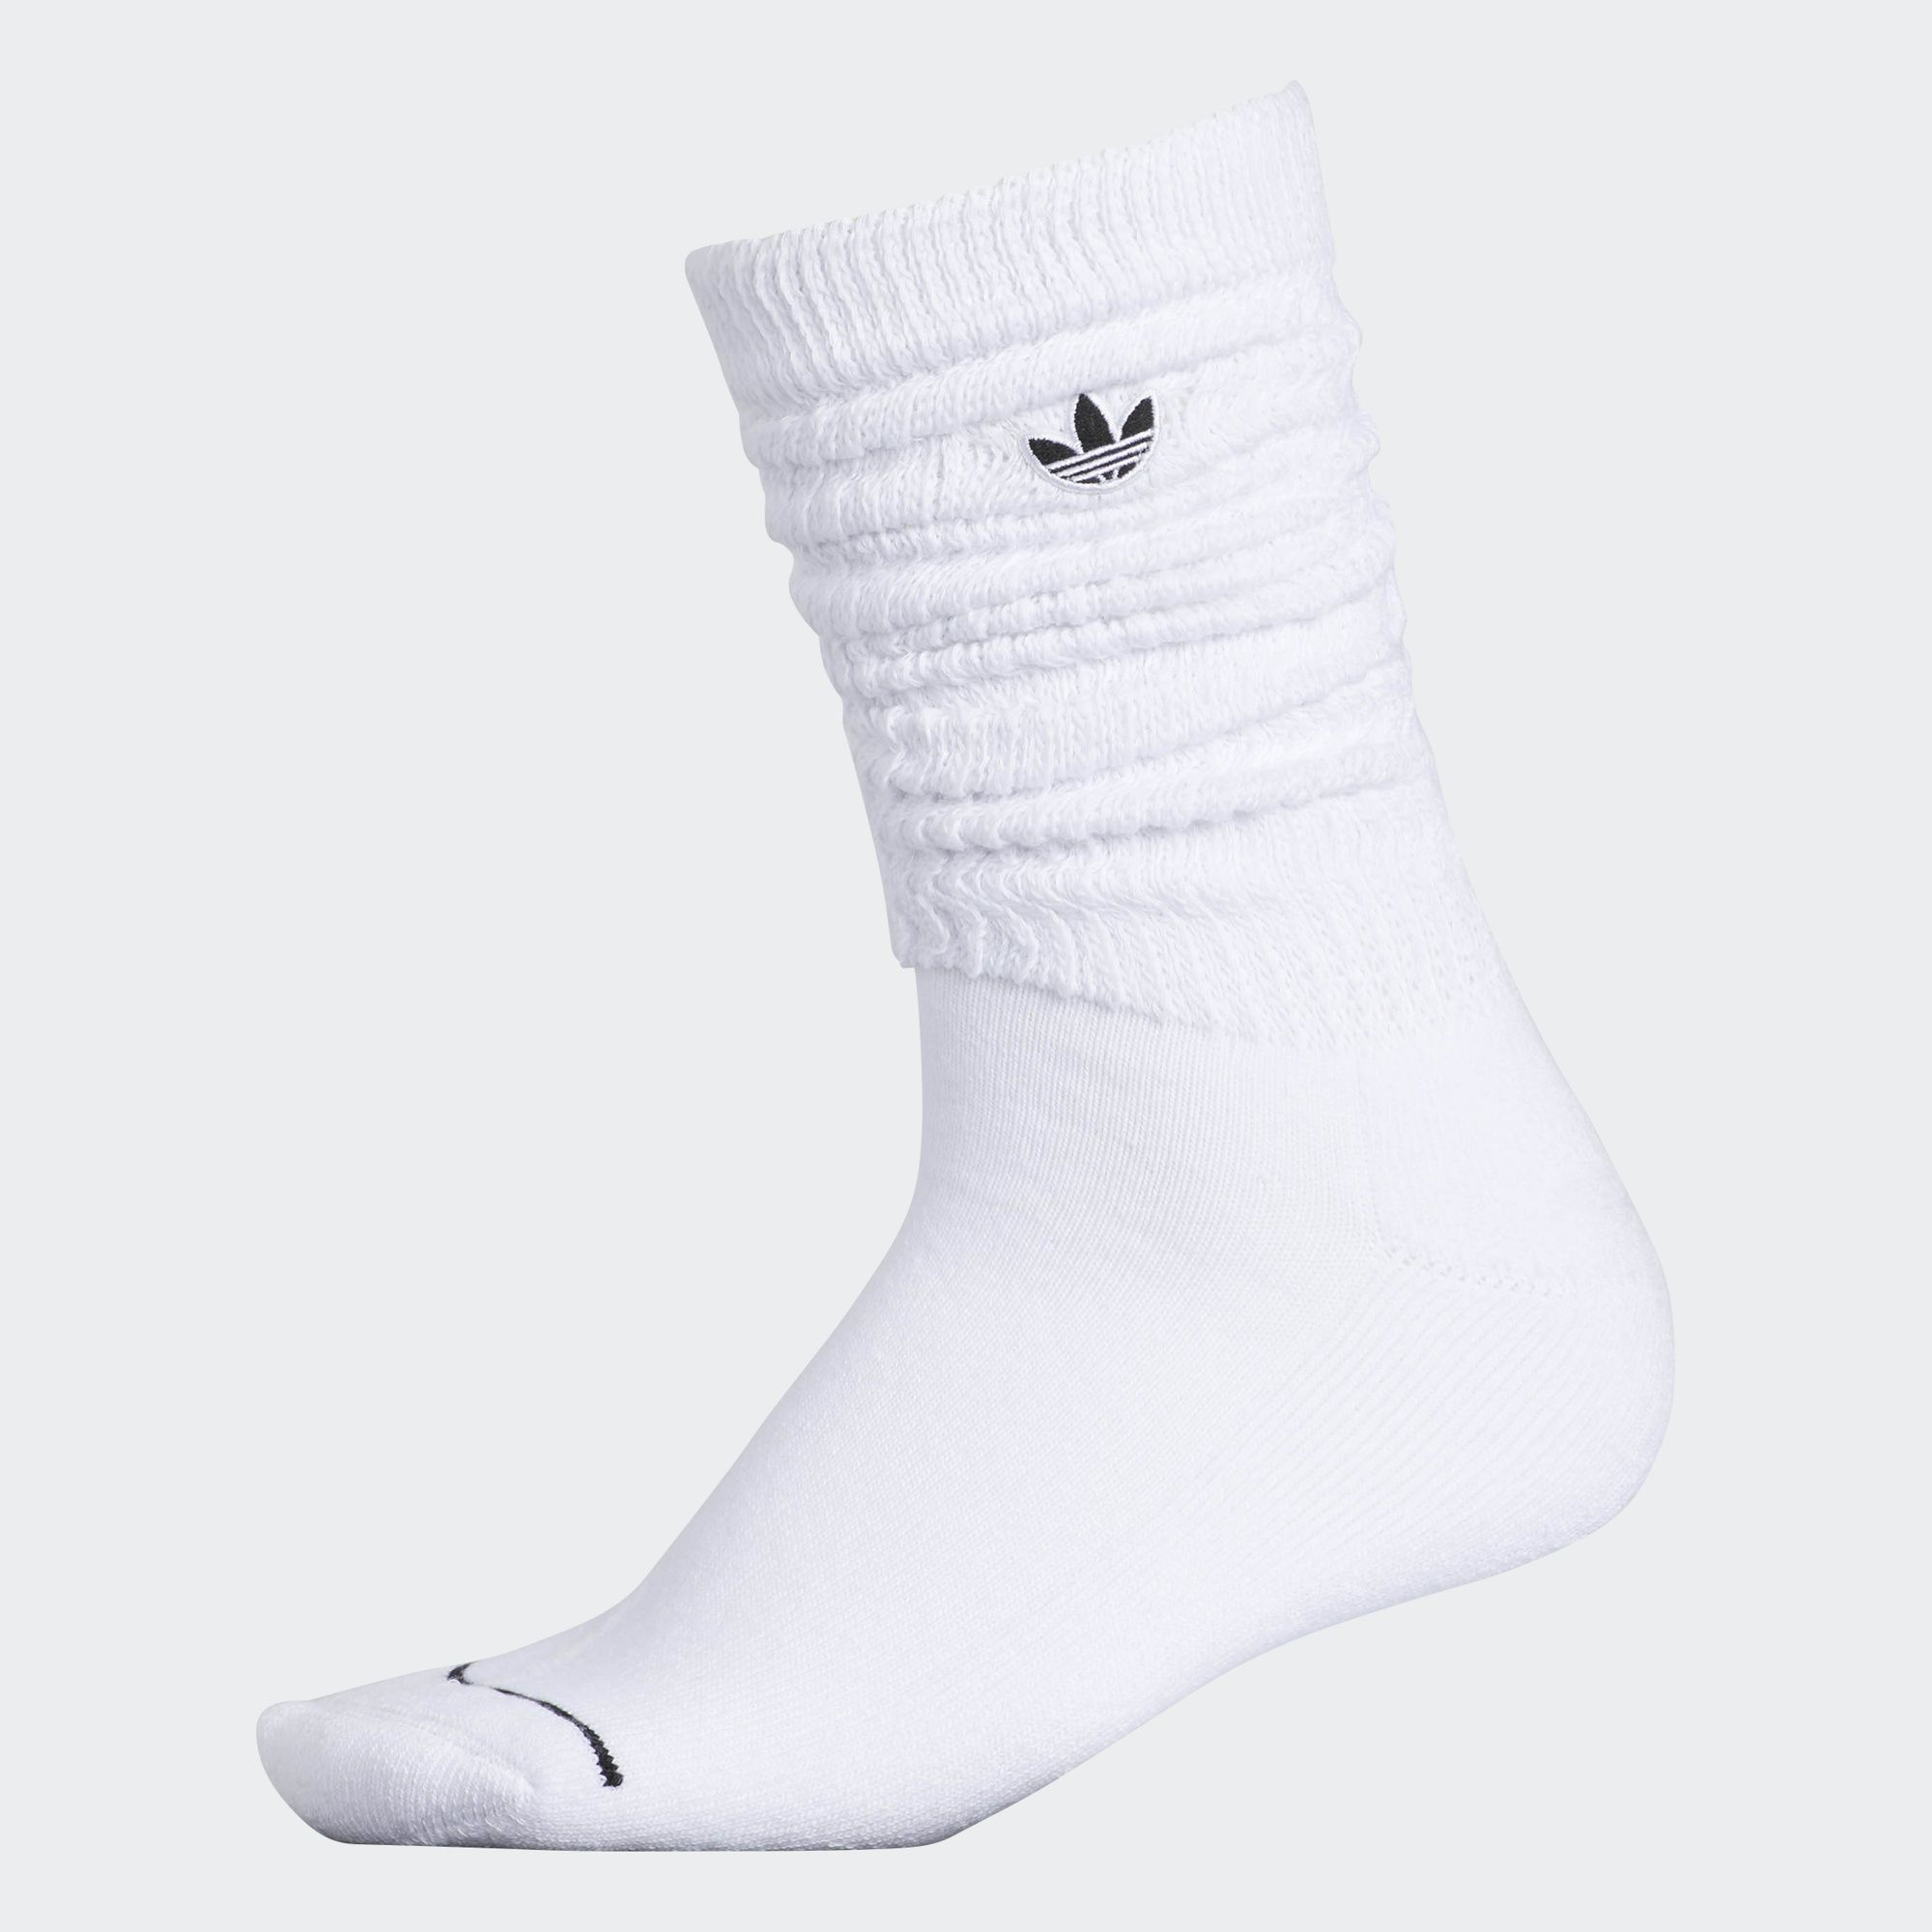 cac718e6a5 ☆ Adidas - Slouch Crew Socks 1 Pair (in White) ☆ | ❤ Fashion ...